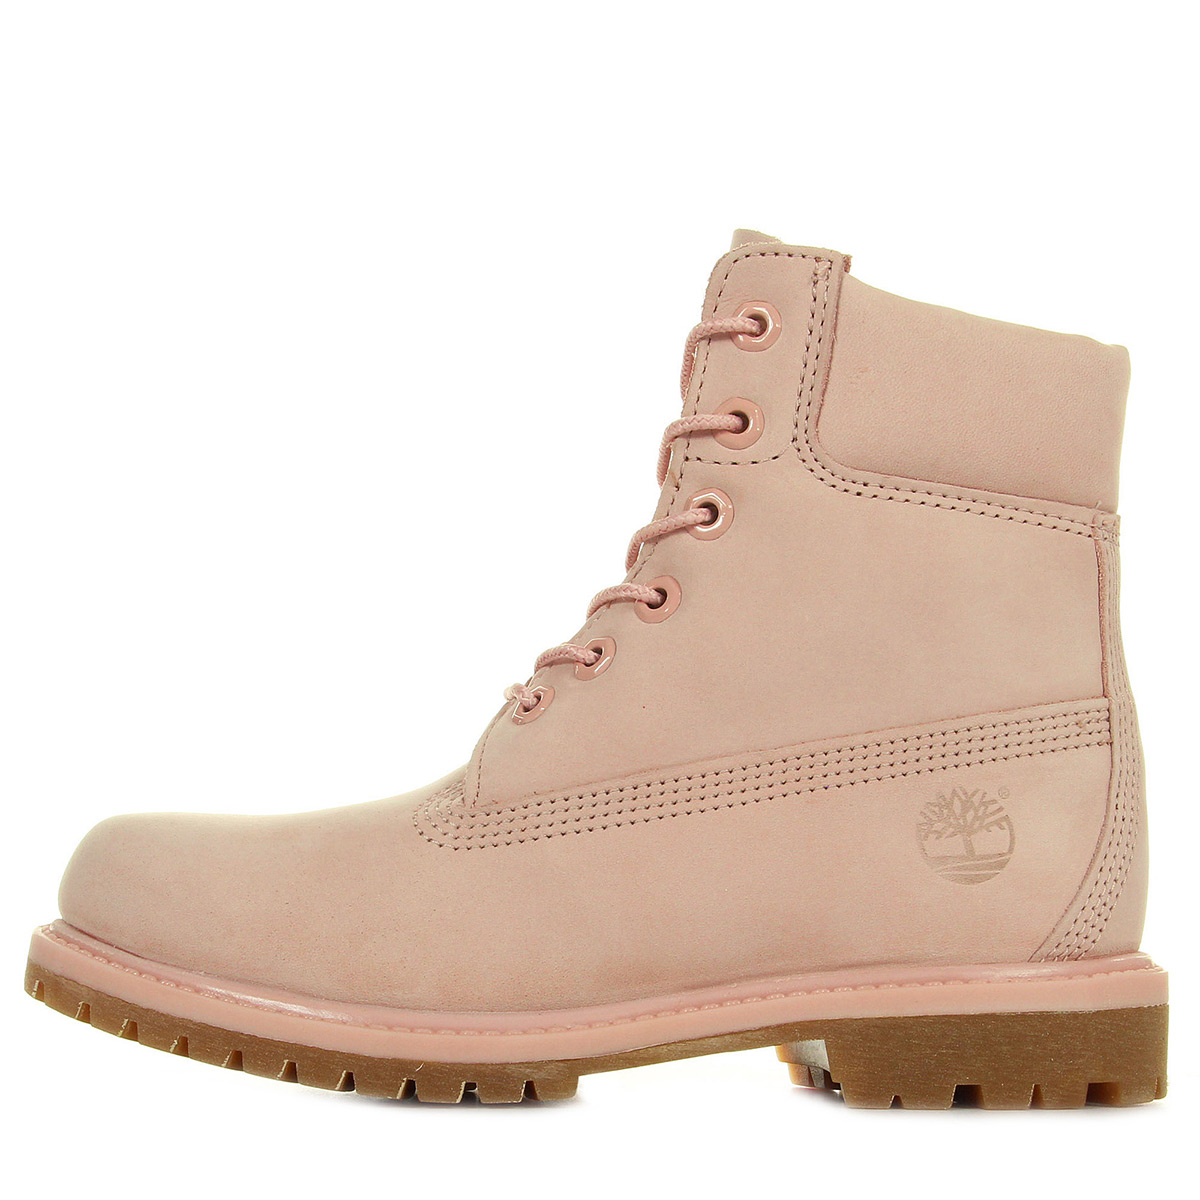 chaussures boots timberland femme 6in premium mono taille rose cuir lacets ebay. Black Bedroom Furniture Sets. Home Design Ideas